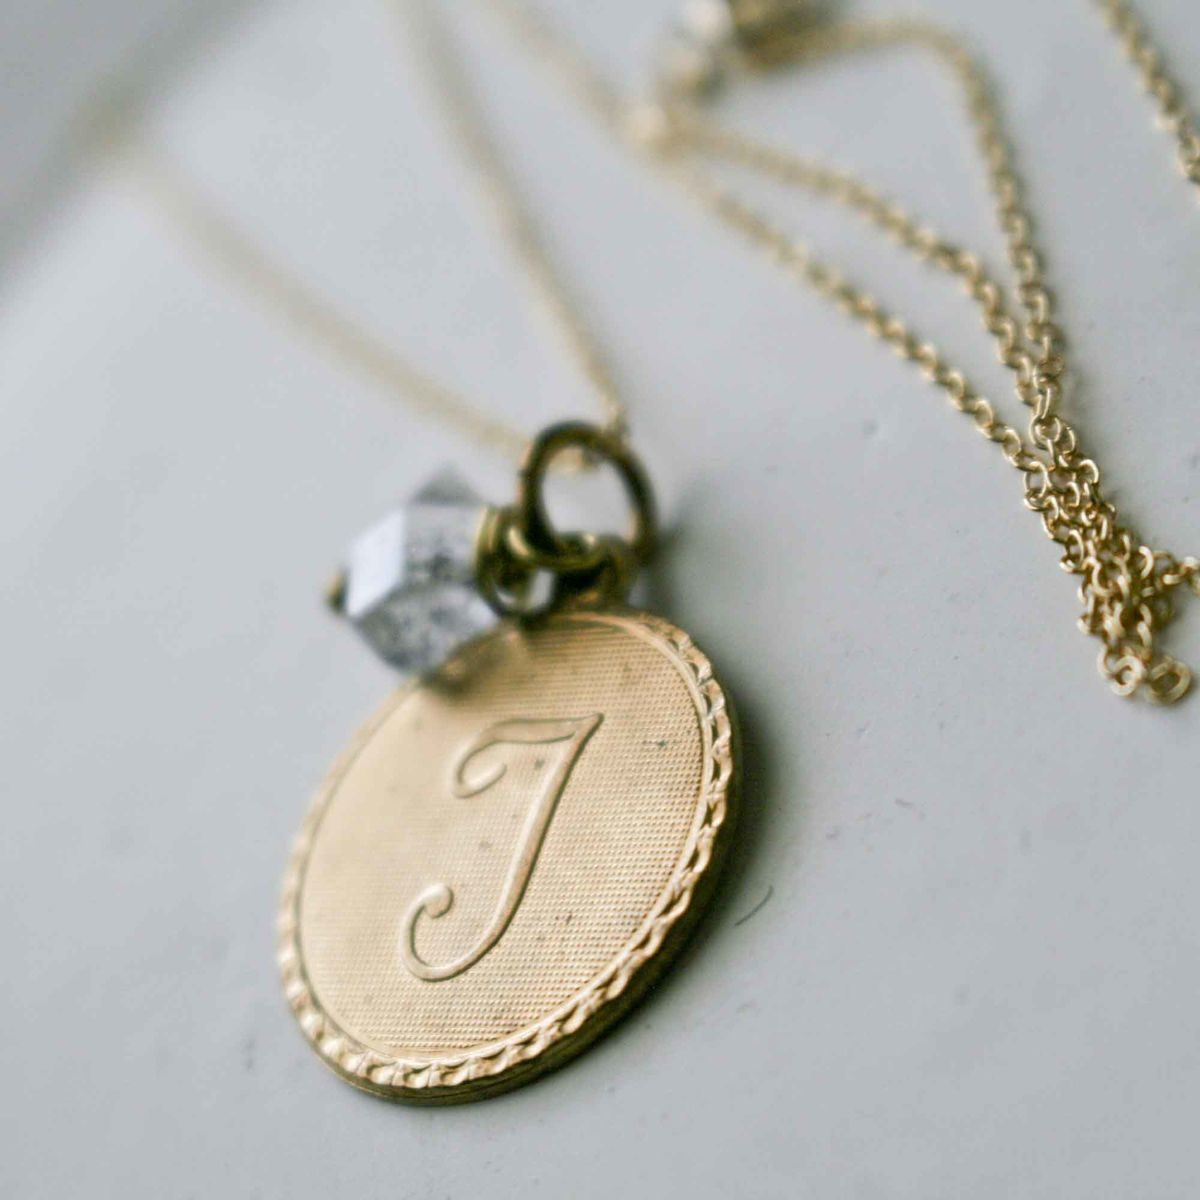 Uppercase Cursive Initial Monogram Letter Round Disc Charm Necklace With Most Popular Letter L Alphabet Locket Element Necklaces (Gallery 19 of 25)